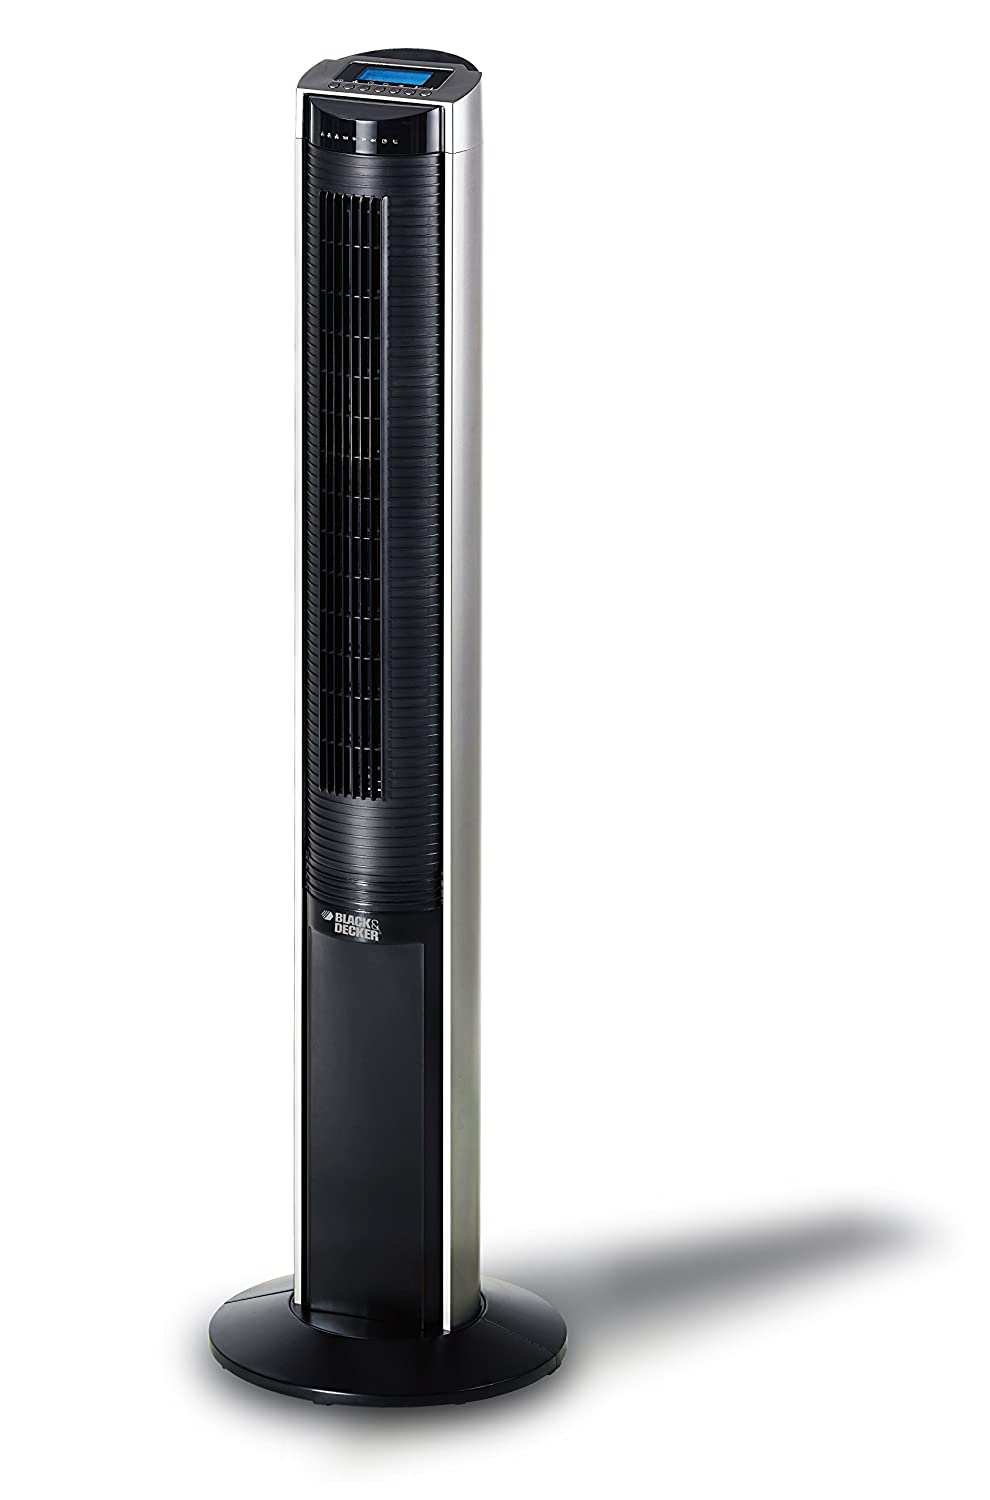 Tall tower fan Black 6 Decker